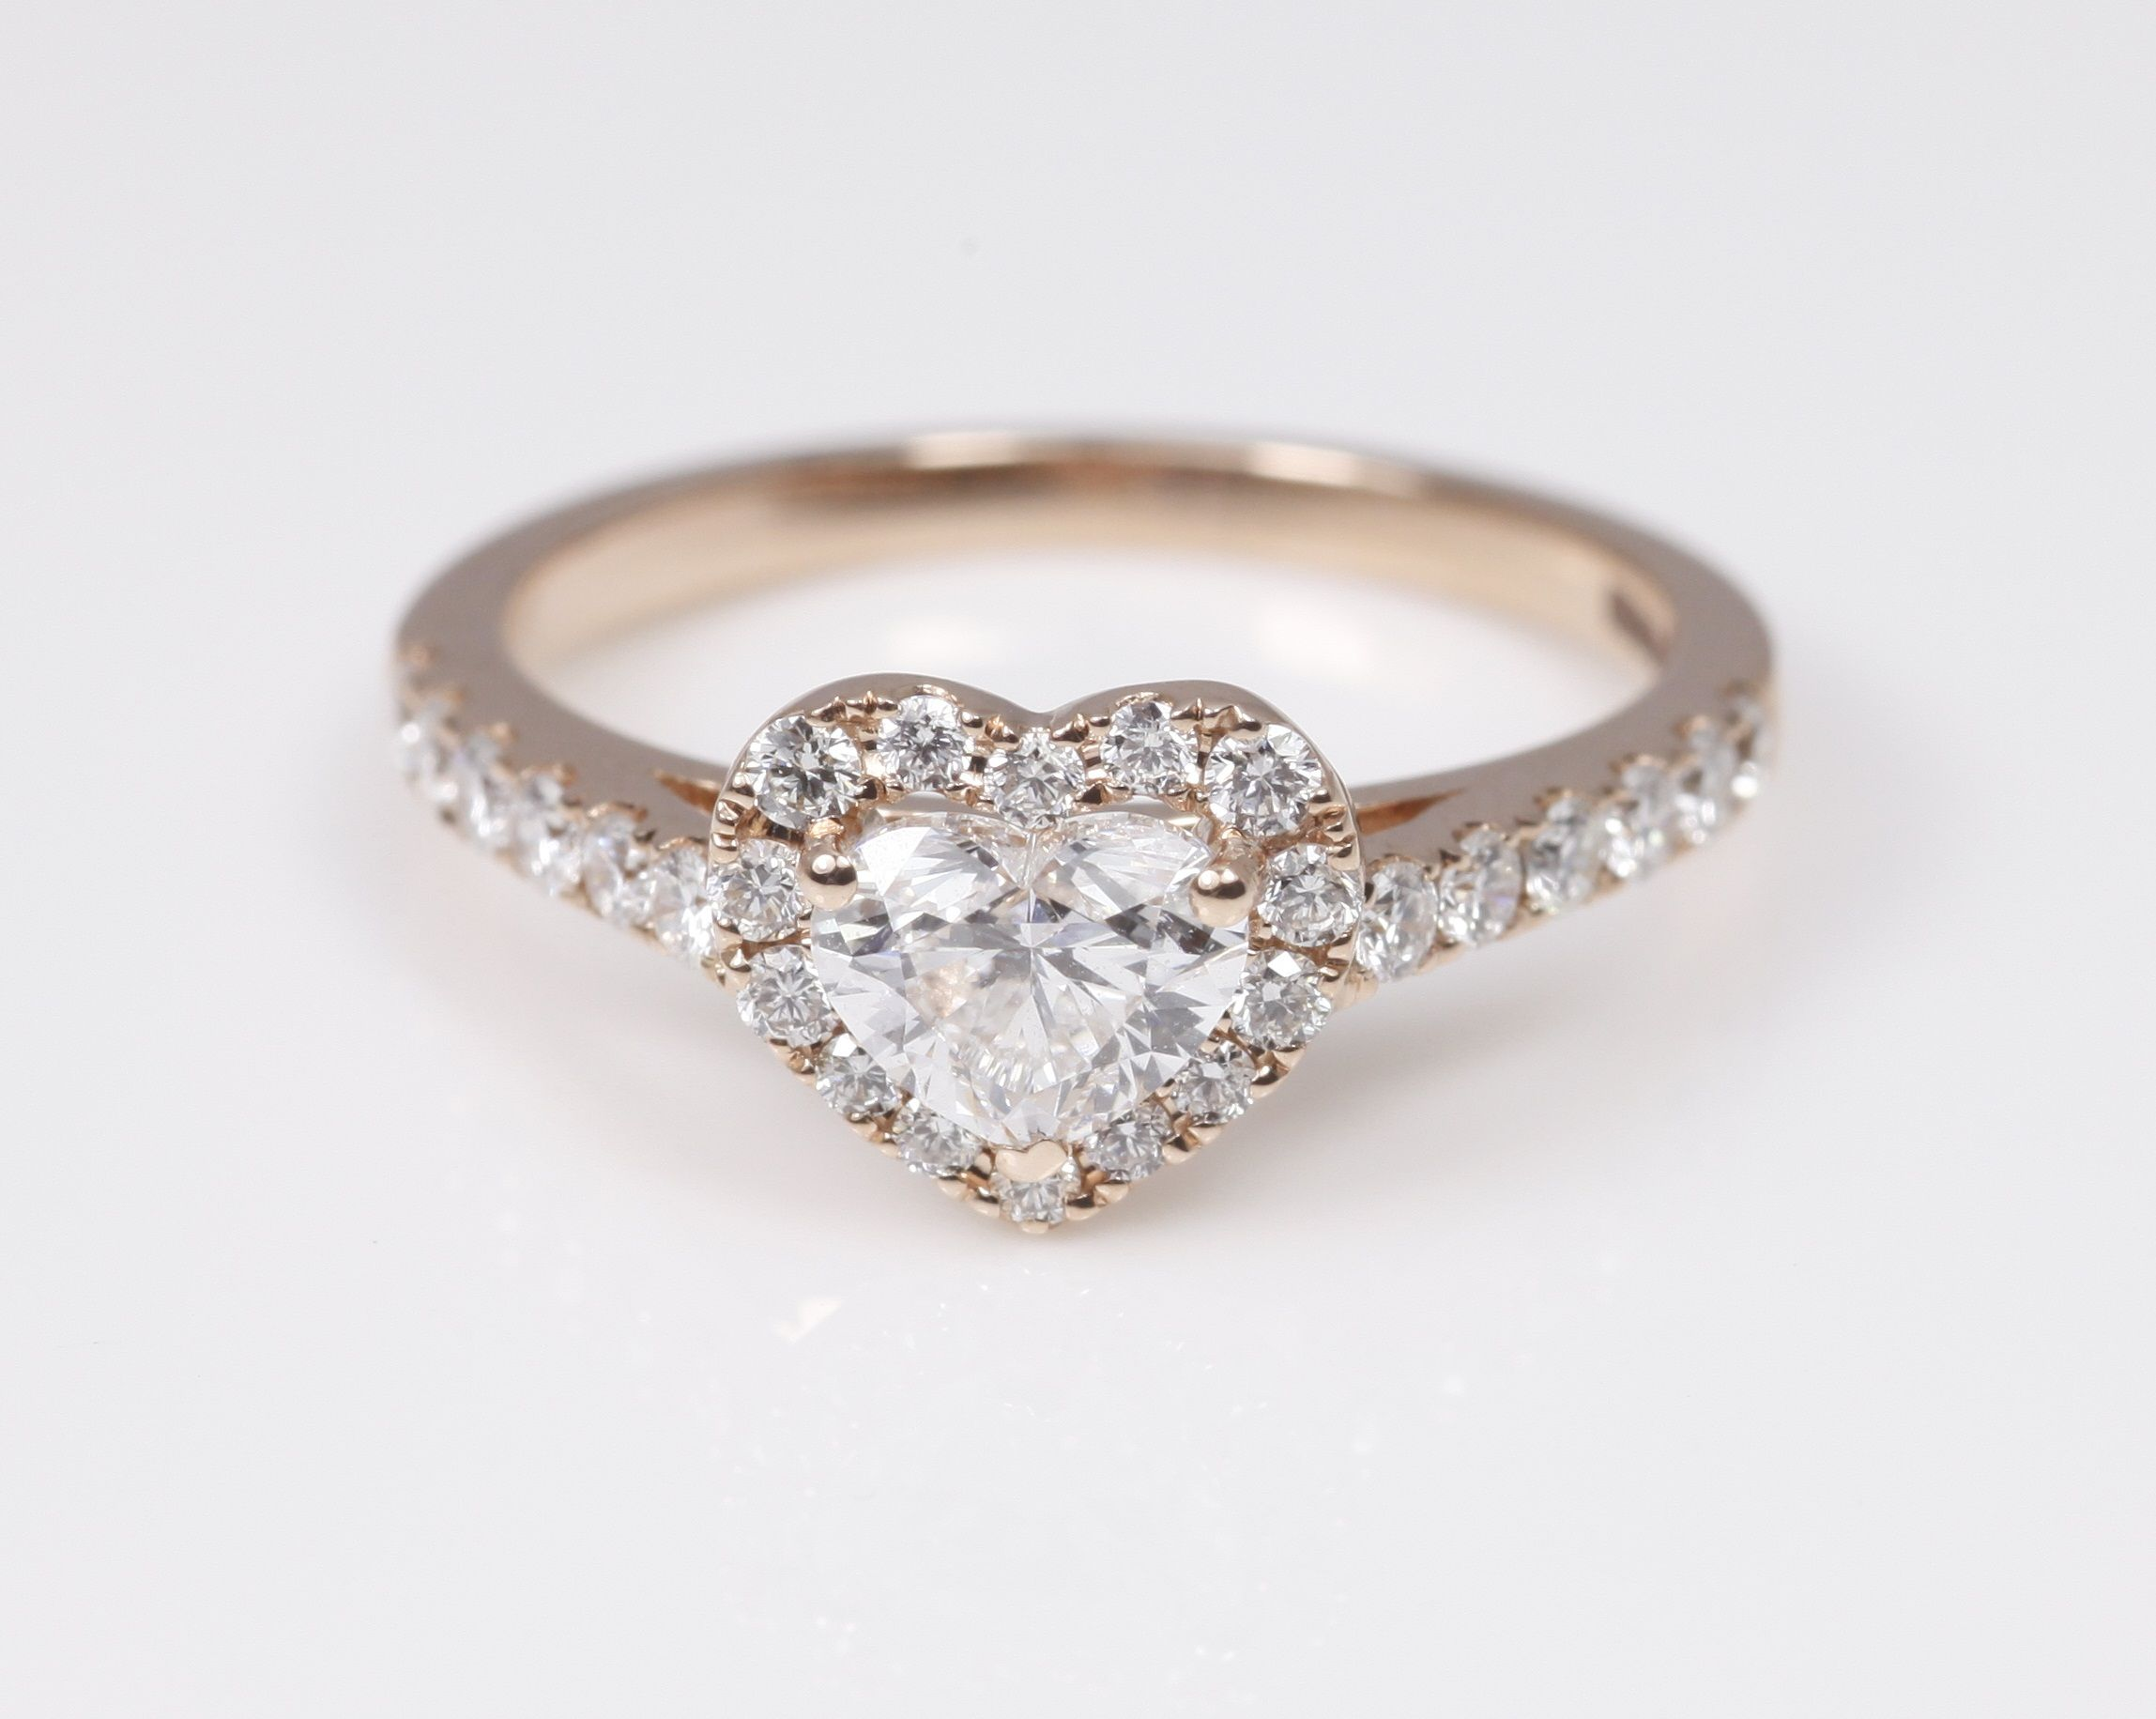 heart shaped celebrity ritani shape blog erica ring courtney engagement rings diamond